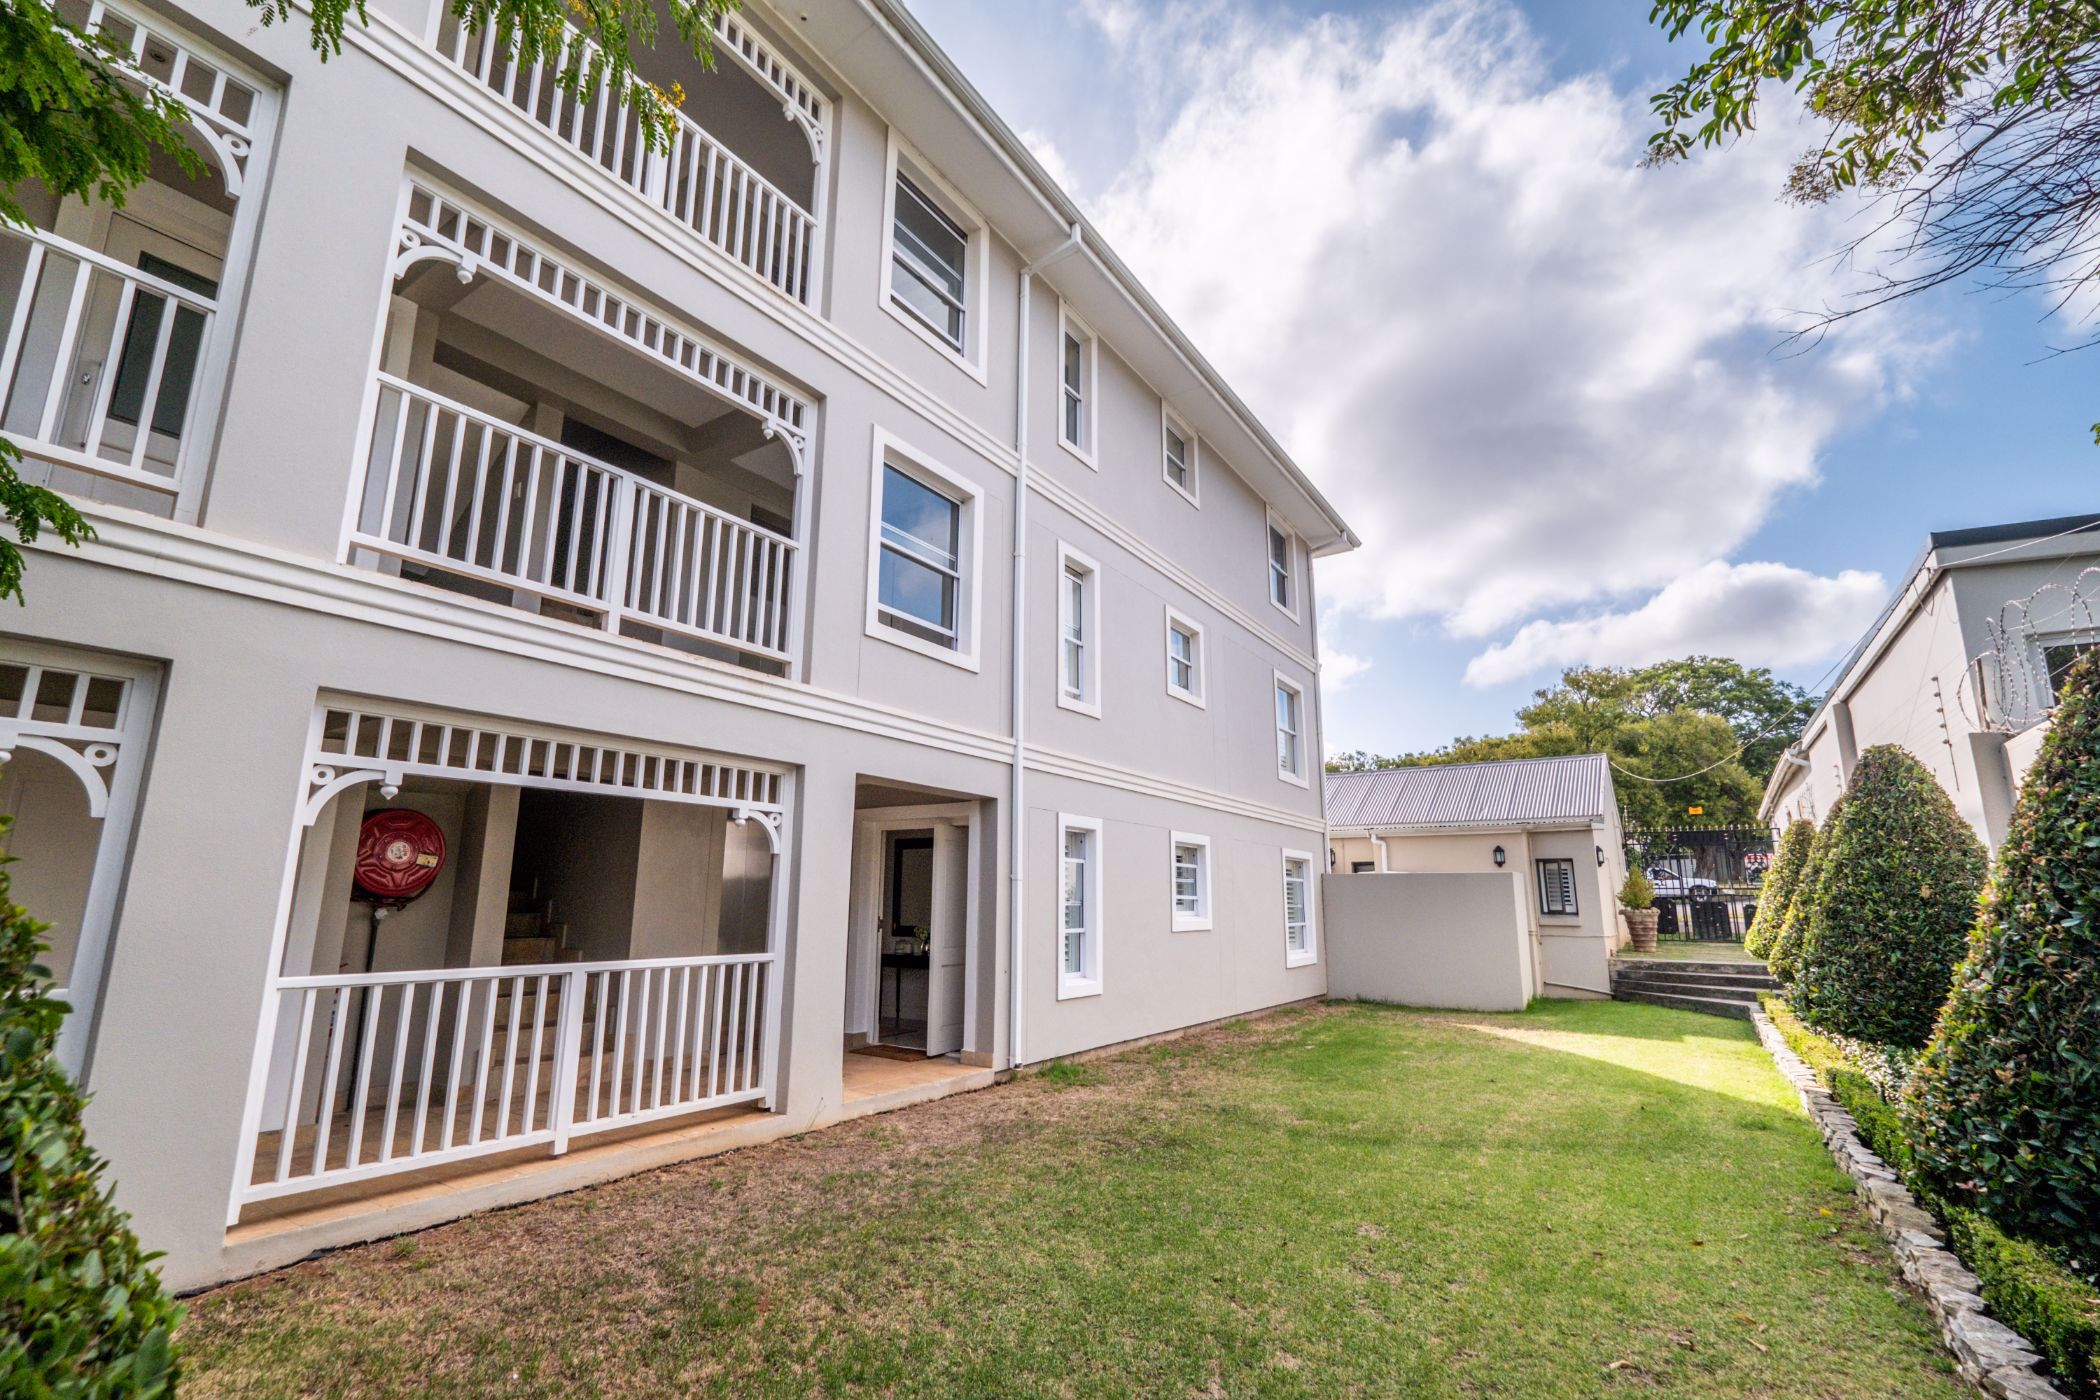 3 bedroom penthouse apartment for sale in West Hill (Makhanda (Grahamstown))